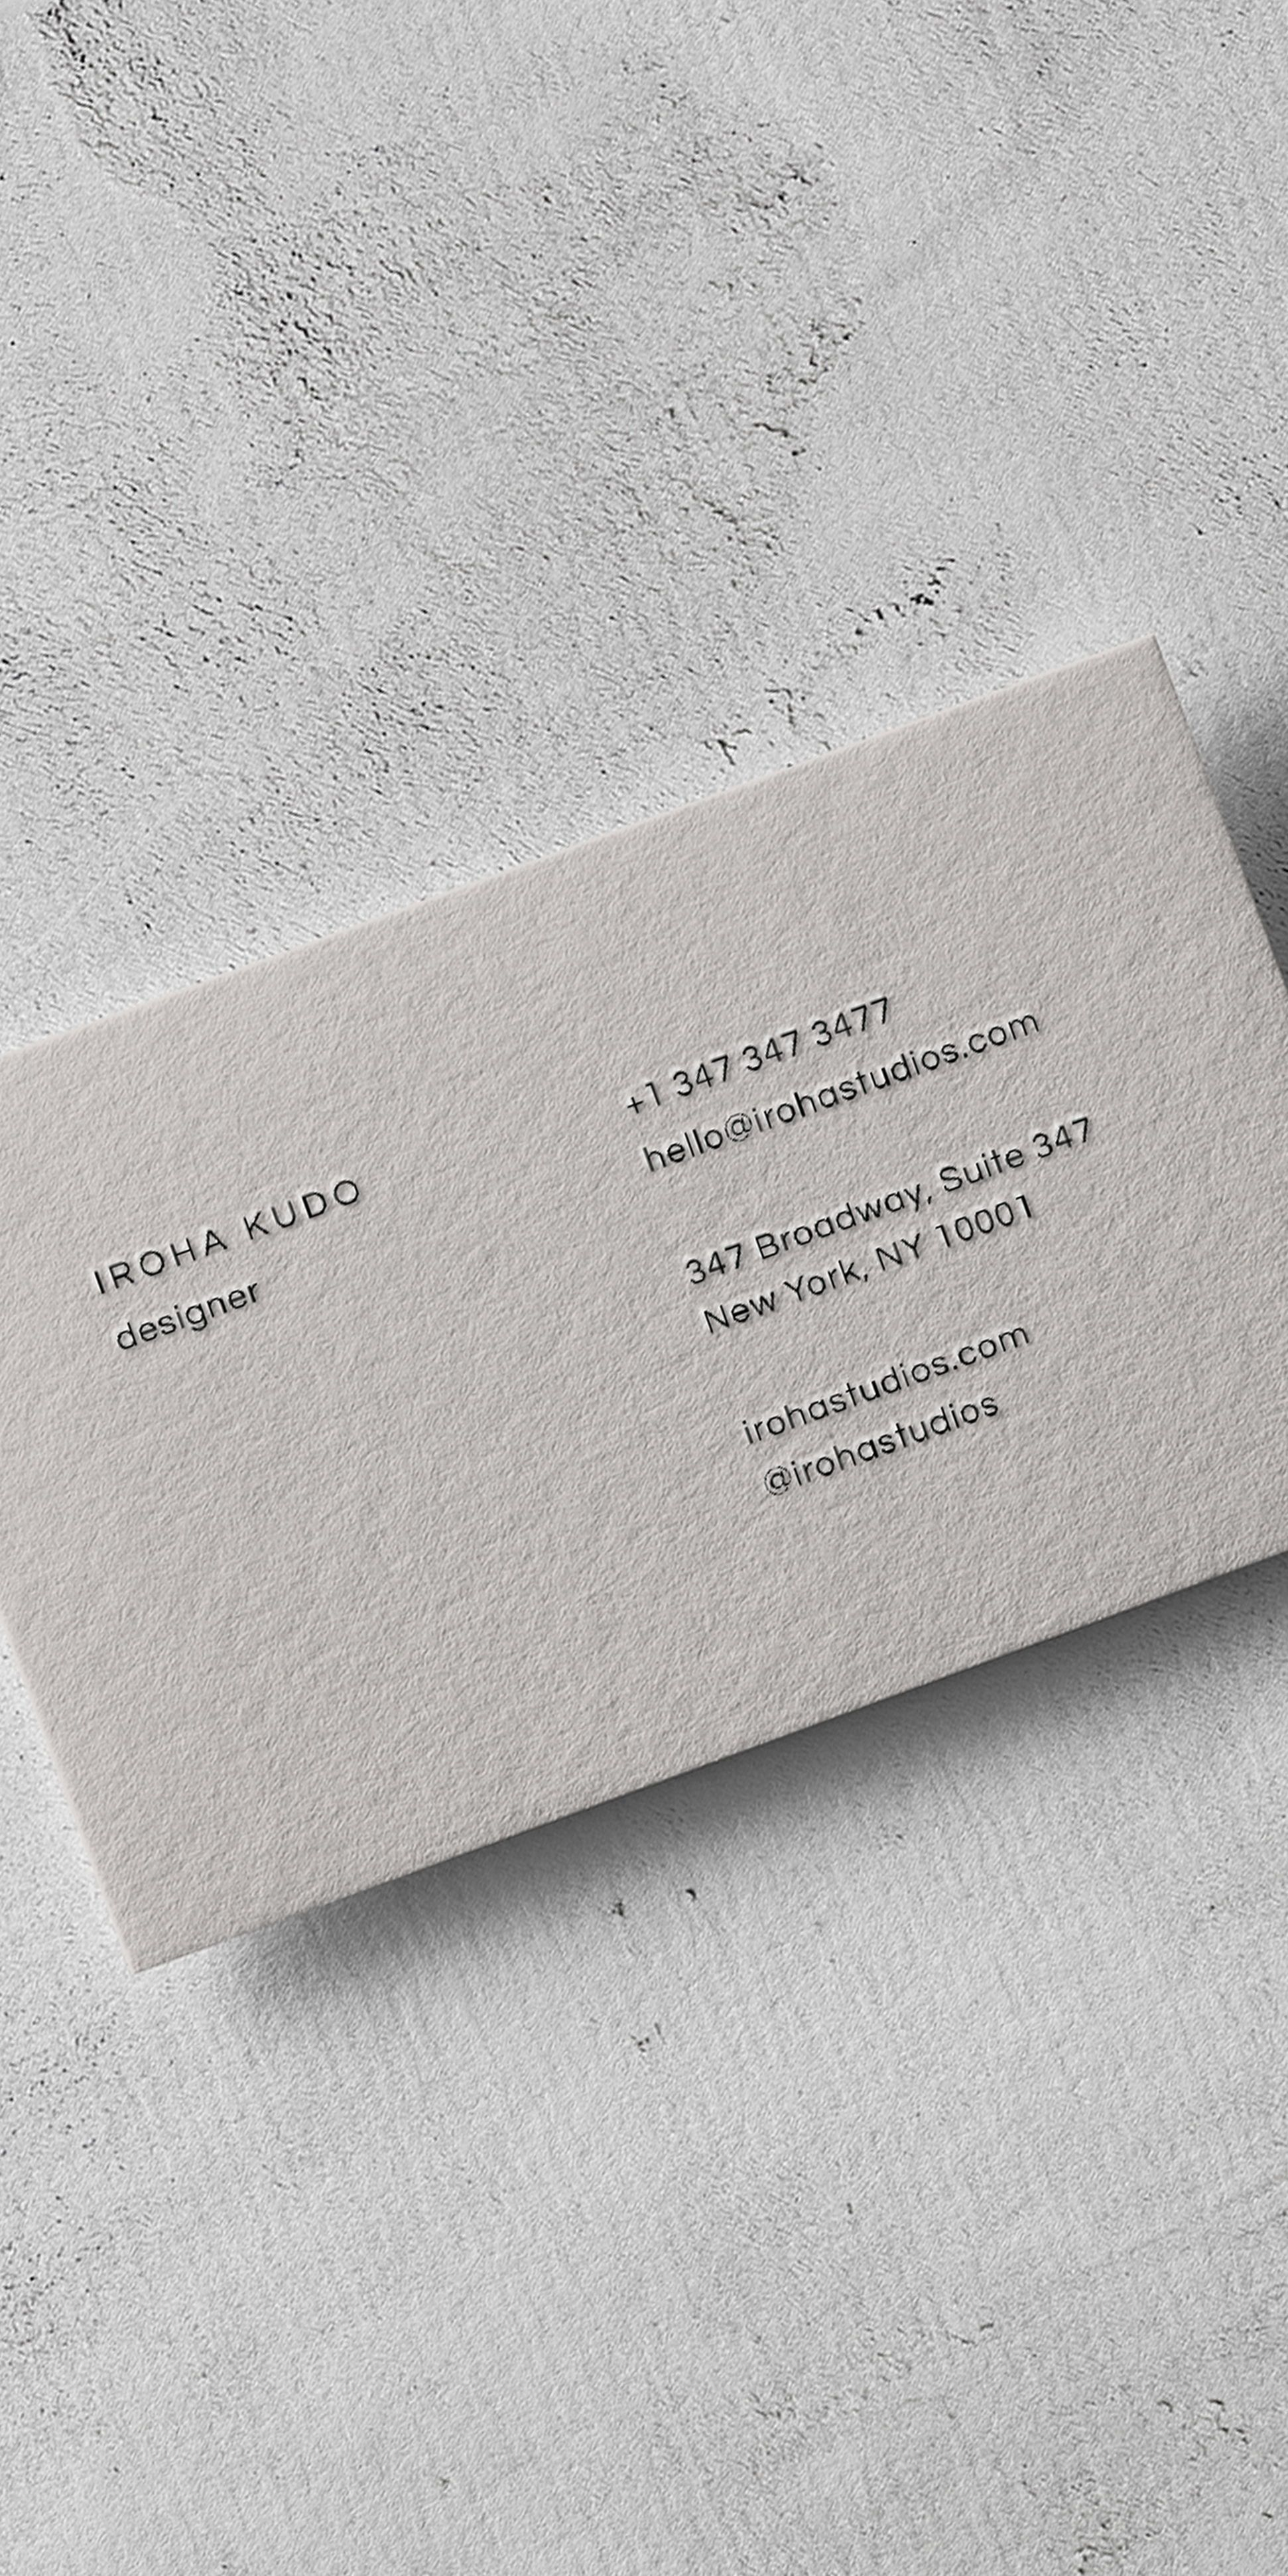 Iroha A Minimal Business Card Design With Modern Font And Color